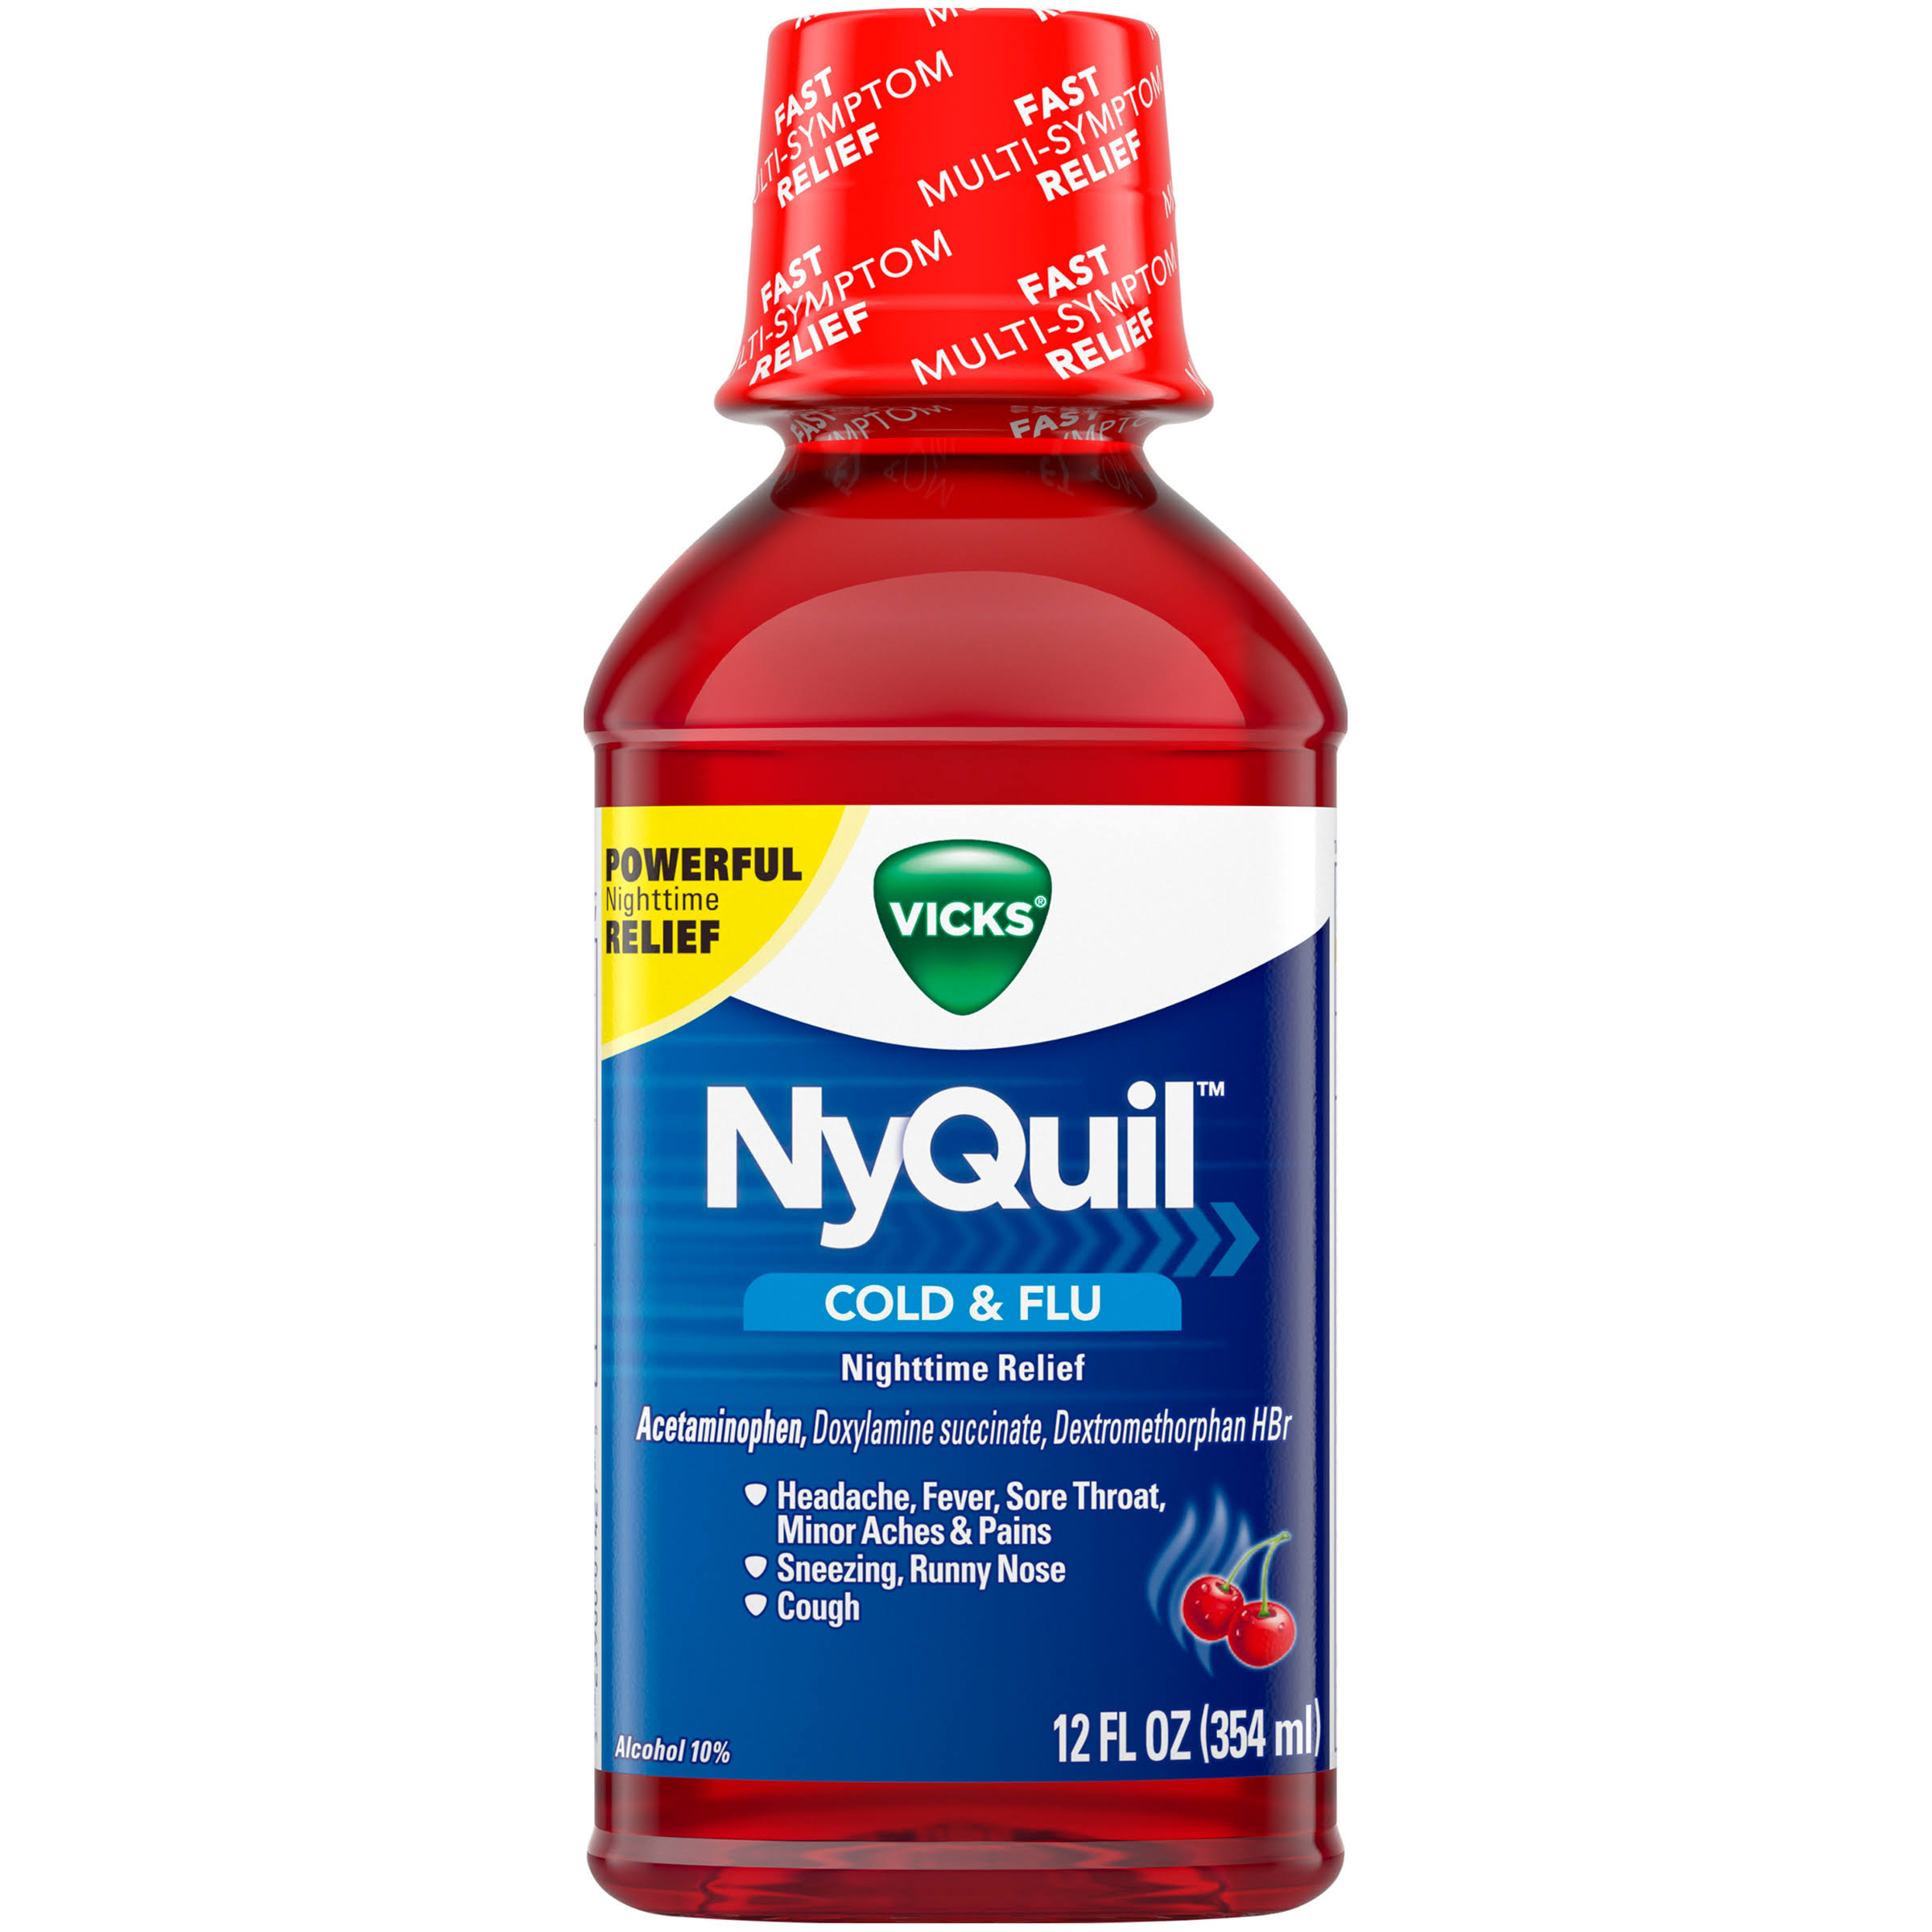 Vicks NyQuil Cold & Flu Nighttime Relief Liquid - 12 fl oz